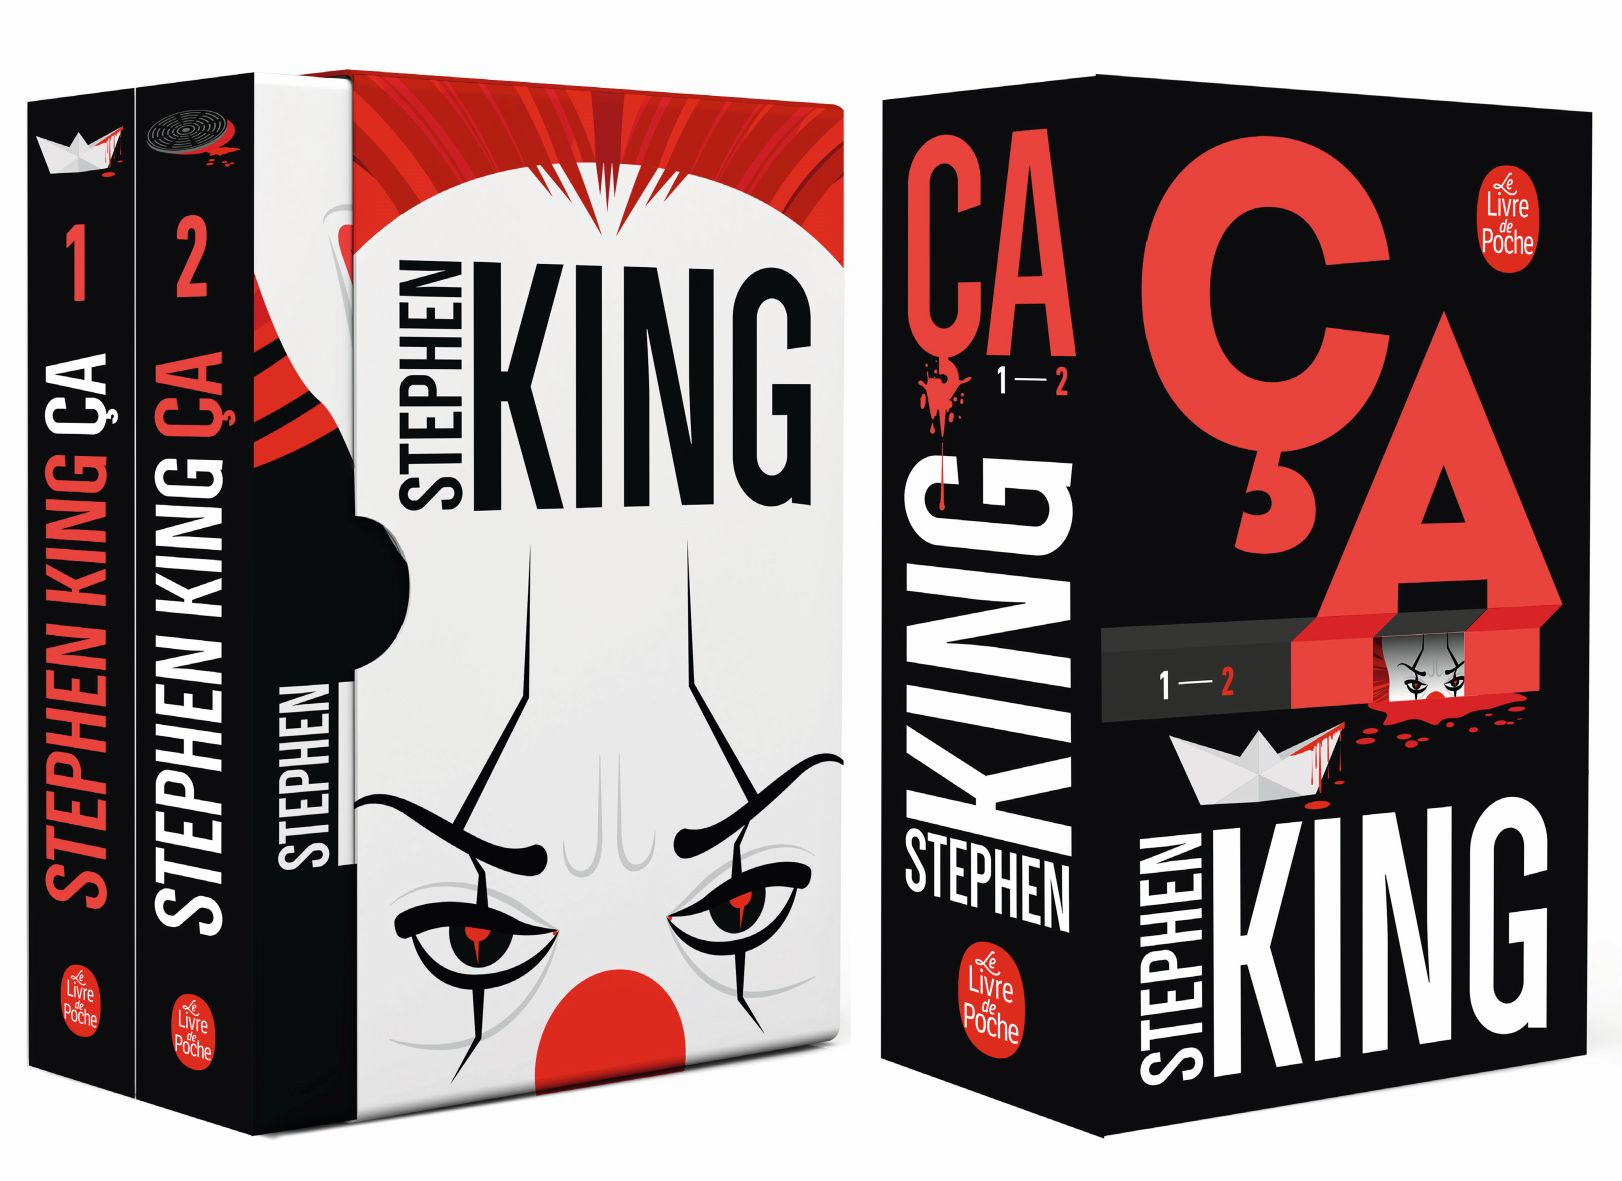 [StephenKing LeLivredePoche CA coffret collector 2017]